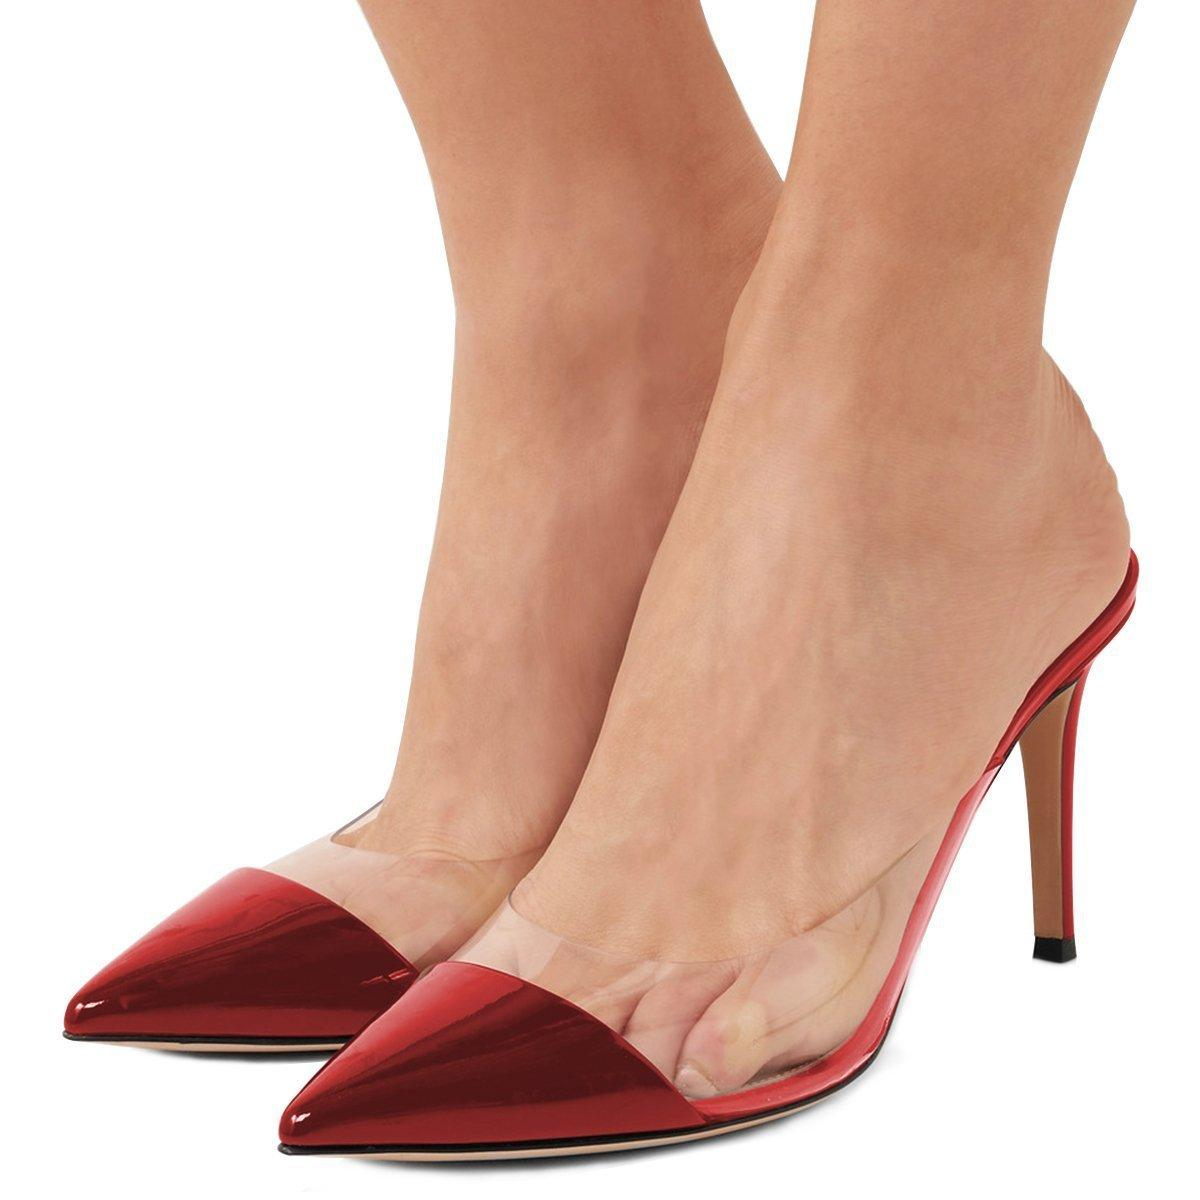 Fashion2019 Fashion Latest Single Shoe Sharp Spelling Color Pvc Fine With Go Excellent High-heeled Shoes Will Code